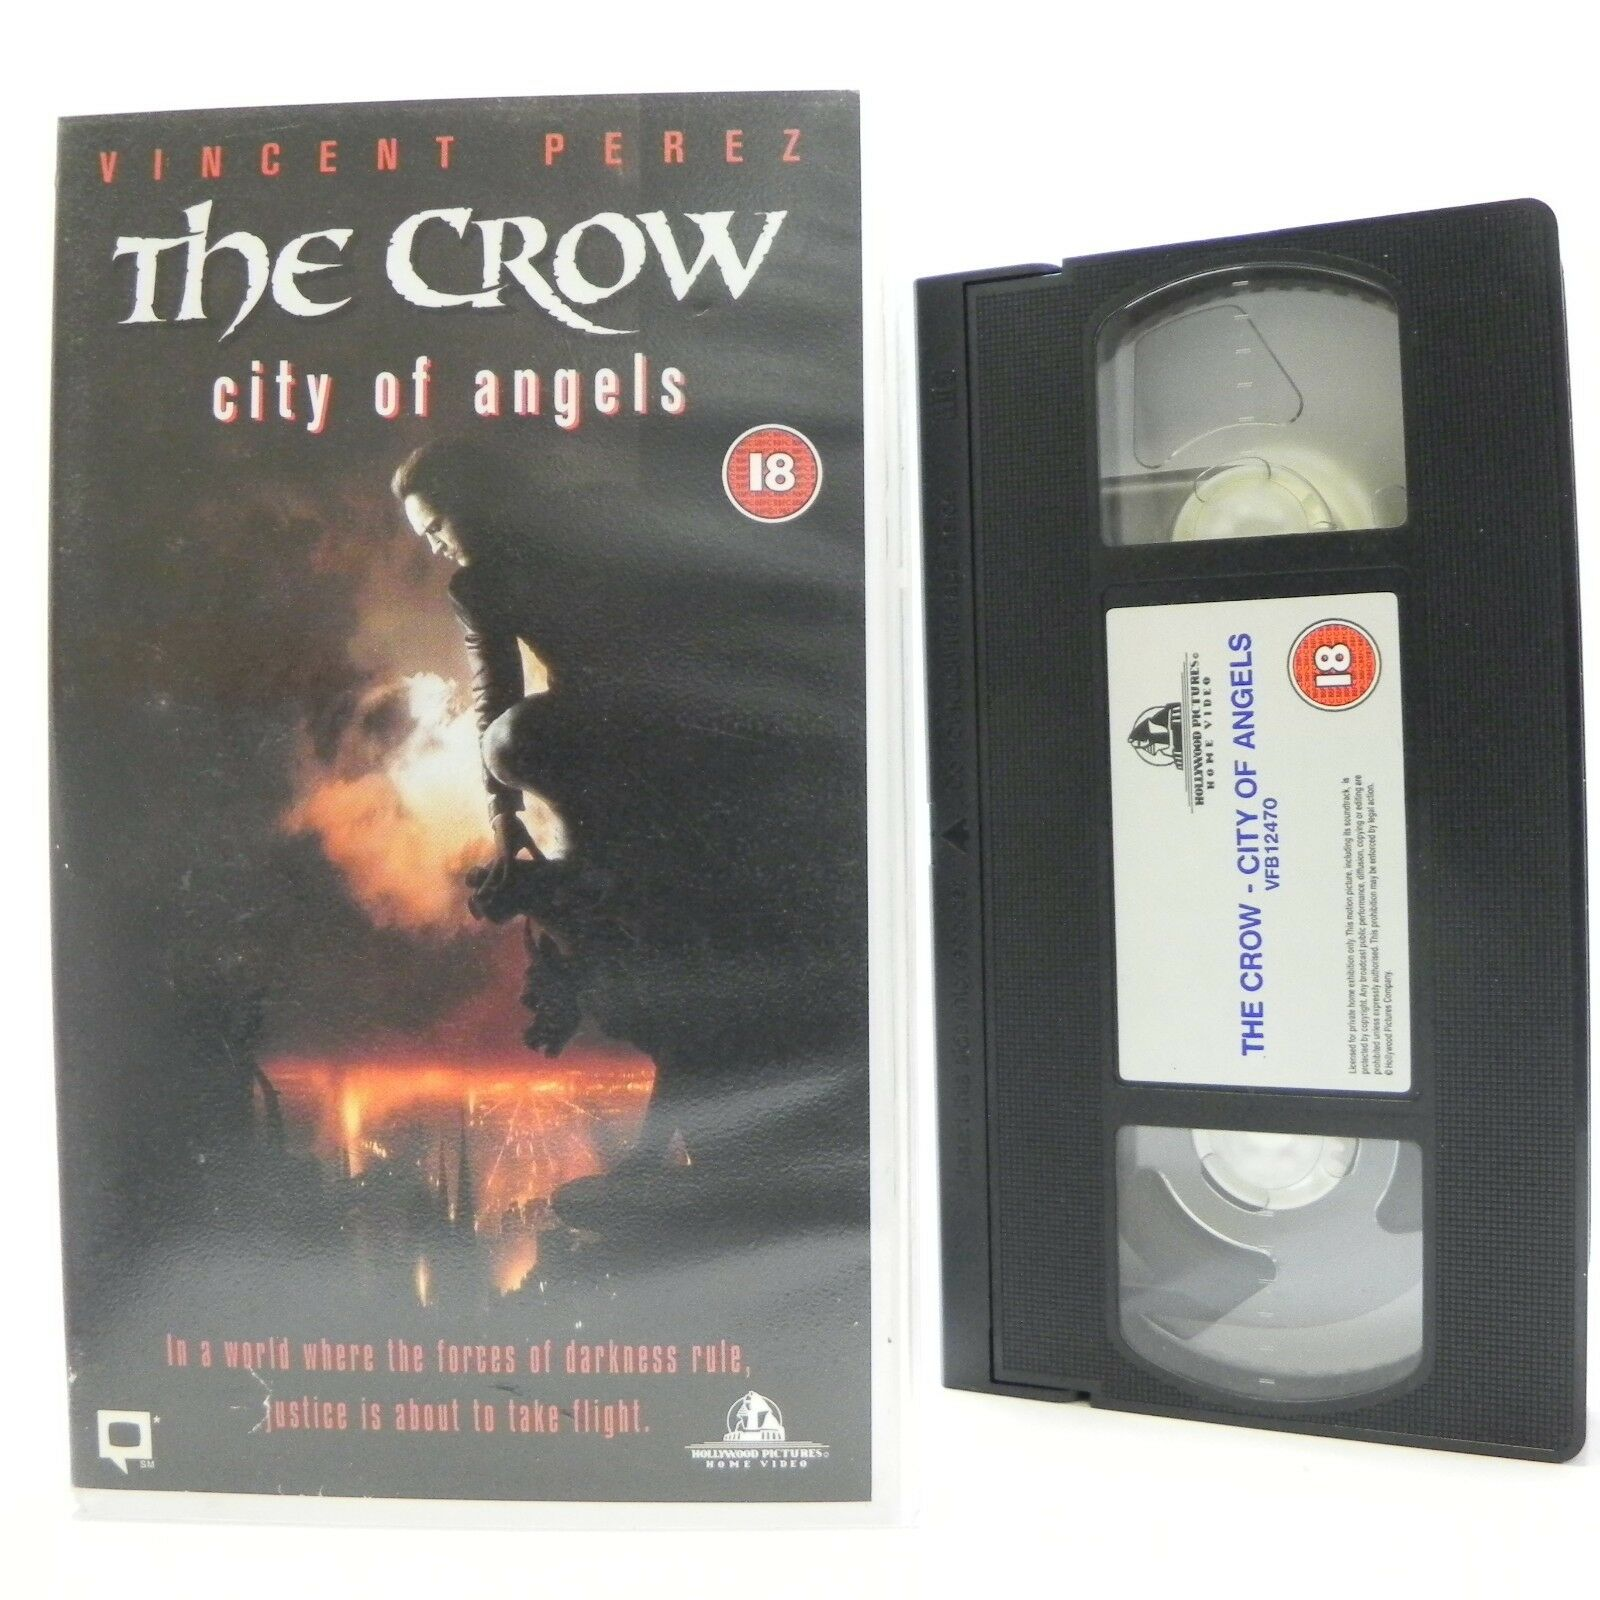 The Crow: City Of Angels - Sci-Fi/Fantasy - Vincent Perez/Mia Kirshner - Pal VHS